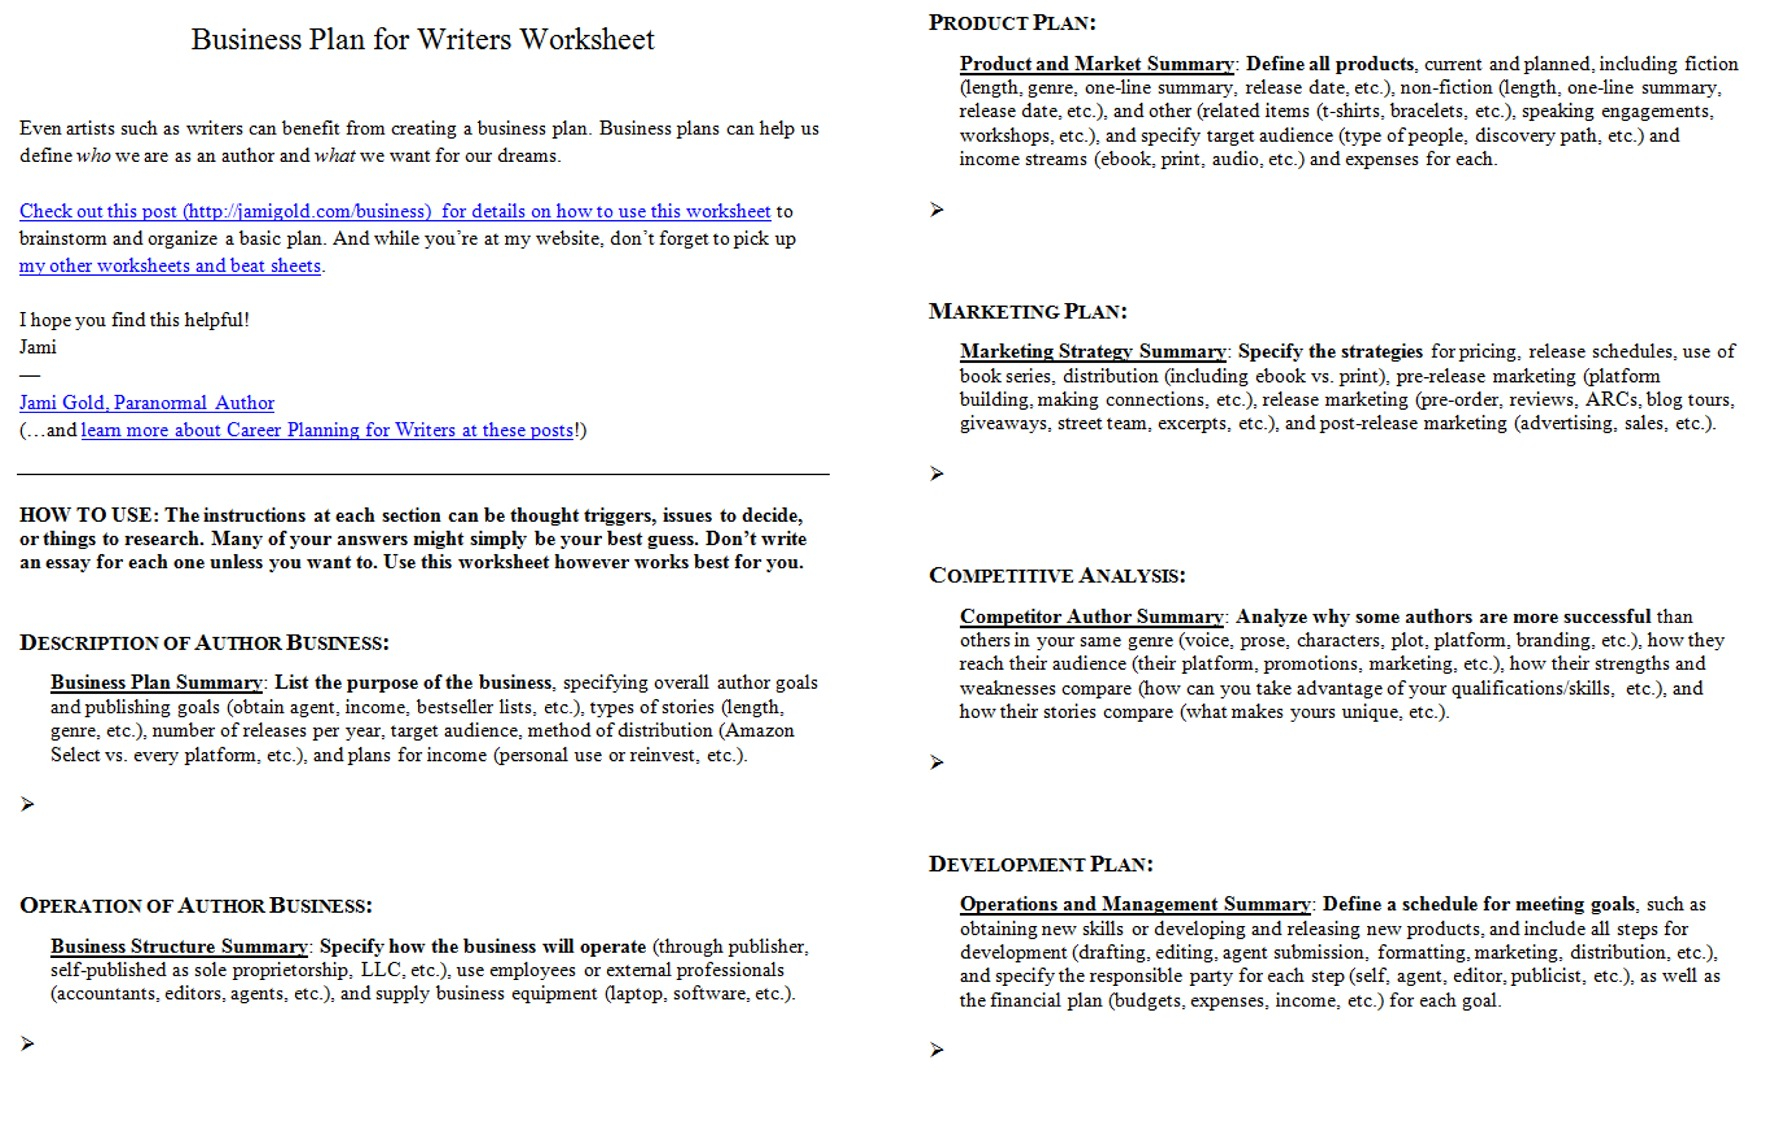 Proatmealus  Outstanding Worksheets For Writers  Jami Gold Paranormal Author With Gorgeous Screen Shot Of Both Pages Of The Business Plan For Writers Worksheet With Astounding Easy Trigonometry Worksheets Also Multiplication And Division Worksheets Rd Grade In Addition Verbal Analogy Worksheets And Phonics Worksheets Short Vowels As Well As Homophones Sentences Worksheet Additionally Subtraction Equations Worksheets From Jamigoldcom With Proatmealus  Gorgeous Worksheets For Writers  Jami Gold Paranormal Author With Astounding Screen Shot Of Both Pages Of The Business Plan For Writers Worksheet And Outstanding Easy Trigonometry Worksheets Also Multiplication And Division Worksheets Rd Grade In Addition Verbal Analogy Worksheets From Jamigoldcom